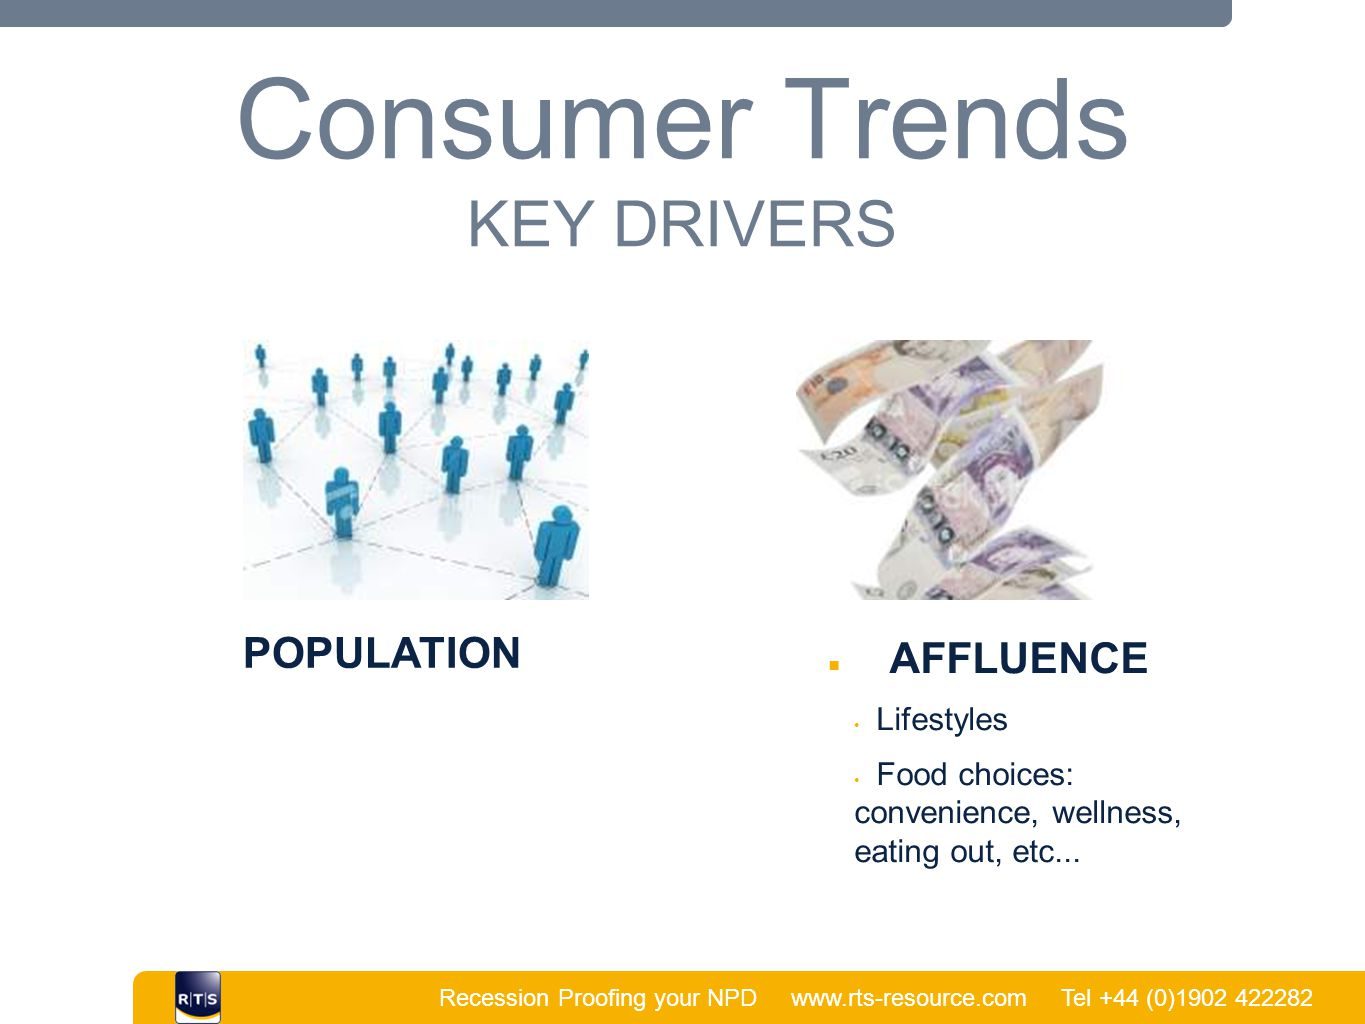 Recession Proofing your NPD www.rts-resource.com Tel +44 (0)1902 422282 | Consumer Trends KEY DRIVERS POPULATION ■ AFFLUENCE Lifestyles Food choices: convenience, wellness, eating out, etc...